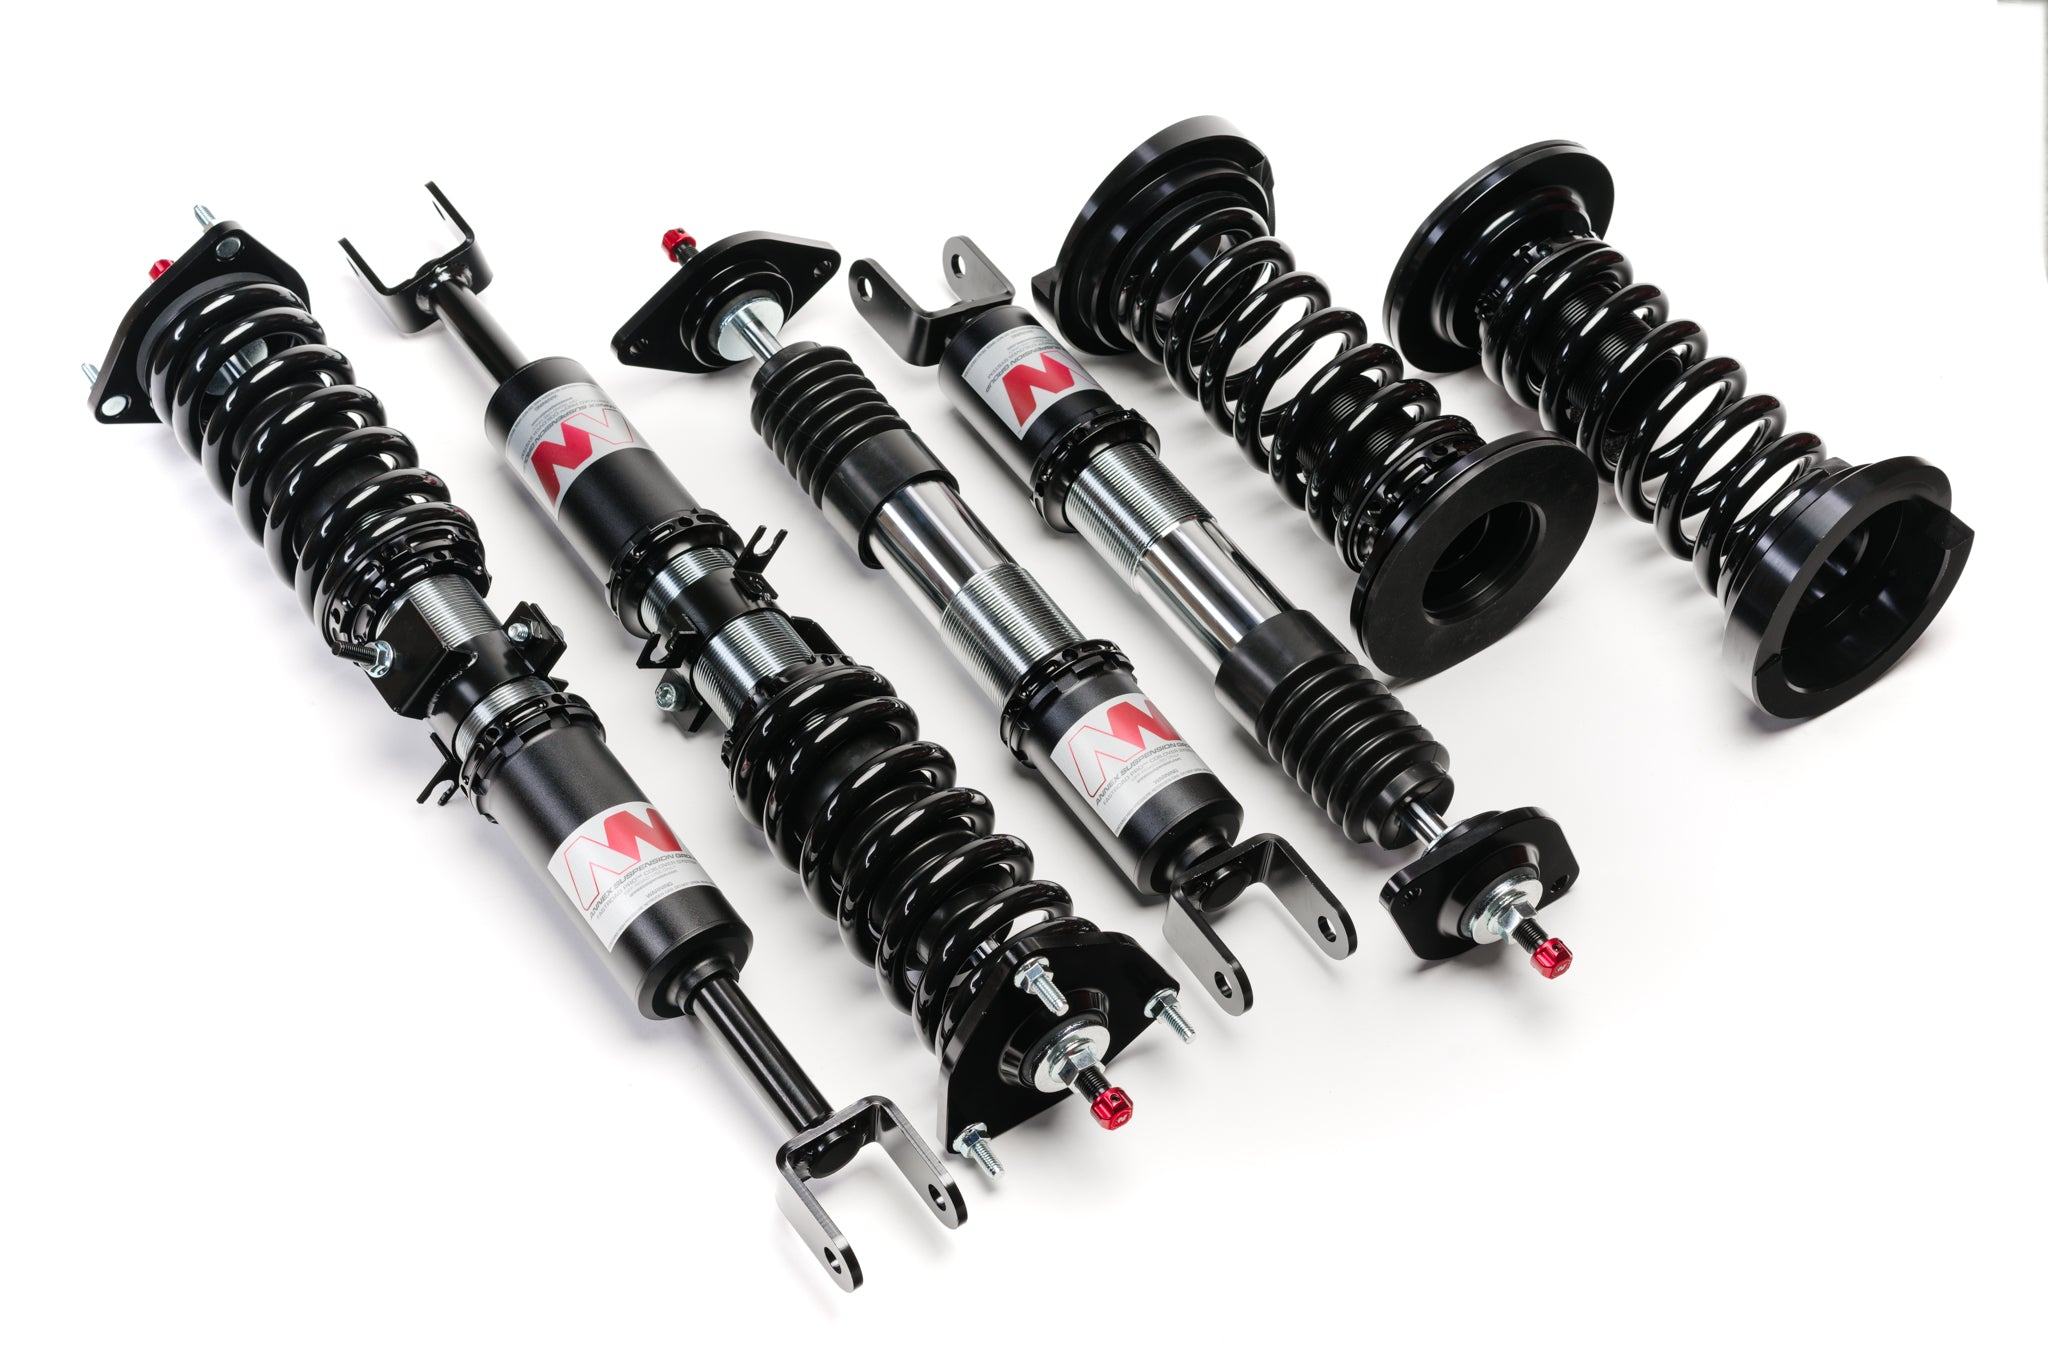 Infiniti 2003-2007 RWD Coupe G35 Performance Coilovers - Black and Red Suspension Setup - Fastroad Pro Coilovers by Annex Suspension Annex Suspension Fastroad Pro Coilovers Best Infiniti 2003-2007 G35 Coupe for Daily Driving (Street Driving and Track Comfort) 2003 2004 2005 2006 2007